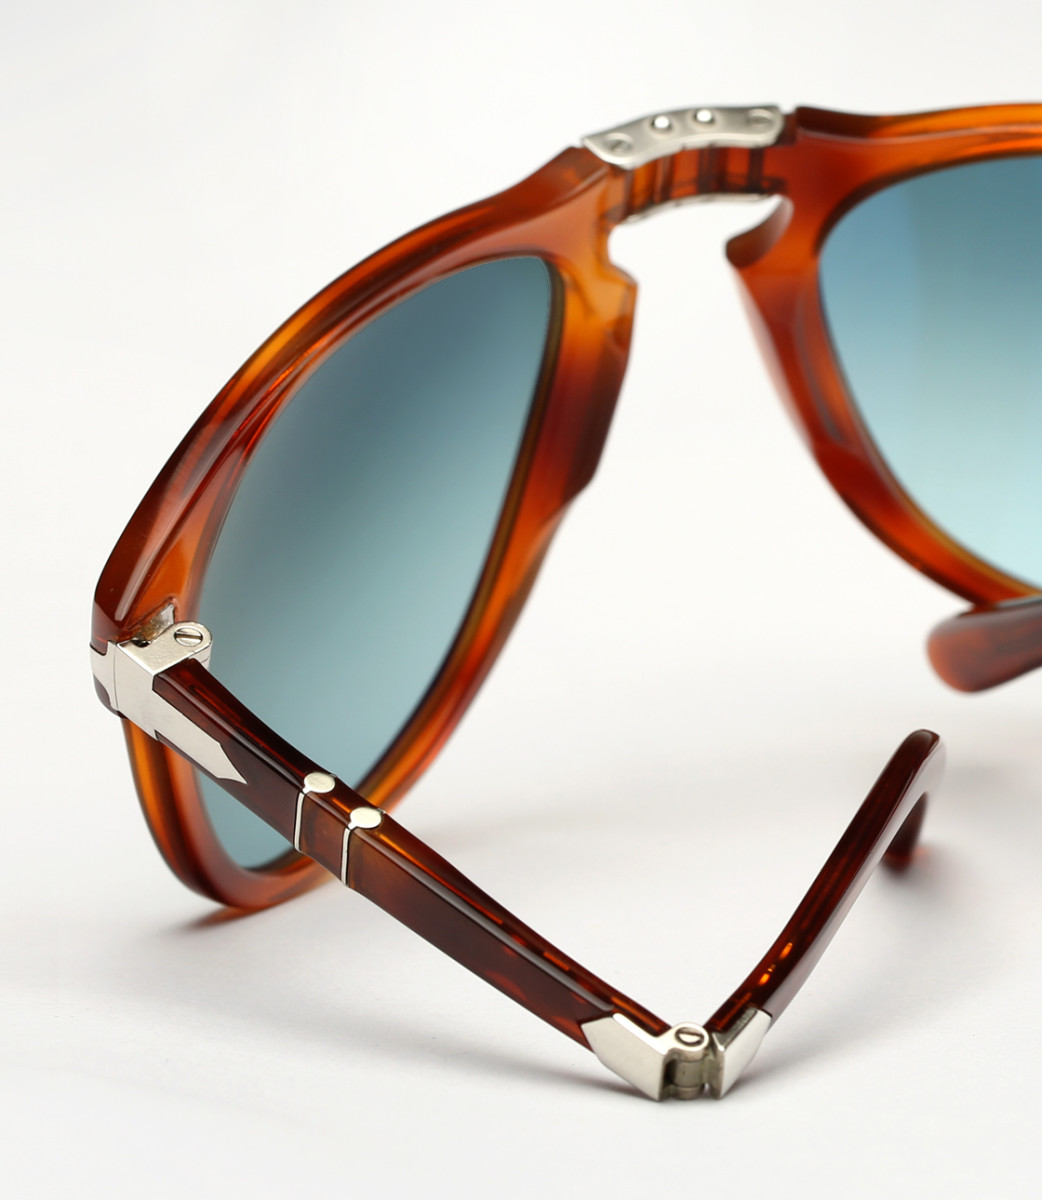 Persol Sunglasses Steve Mcqueen  re issued limited edition persol 714 steve mcqueen sunglasses airows